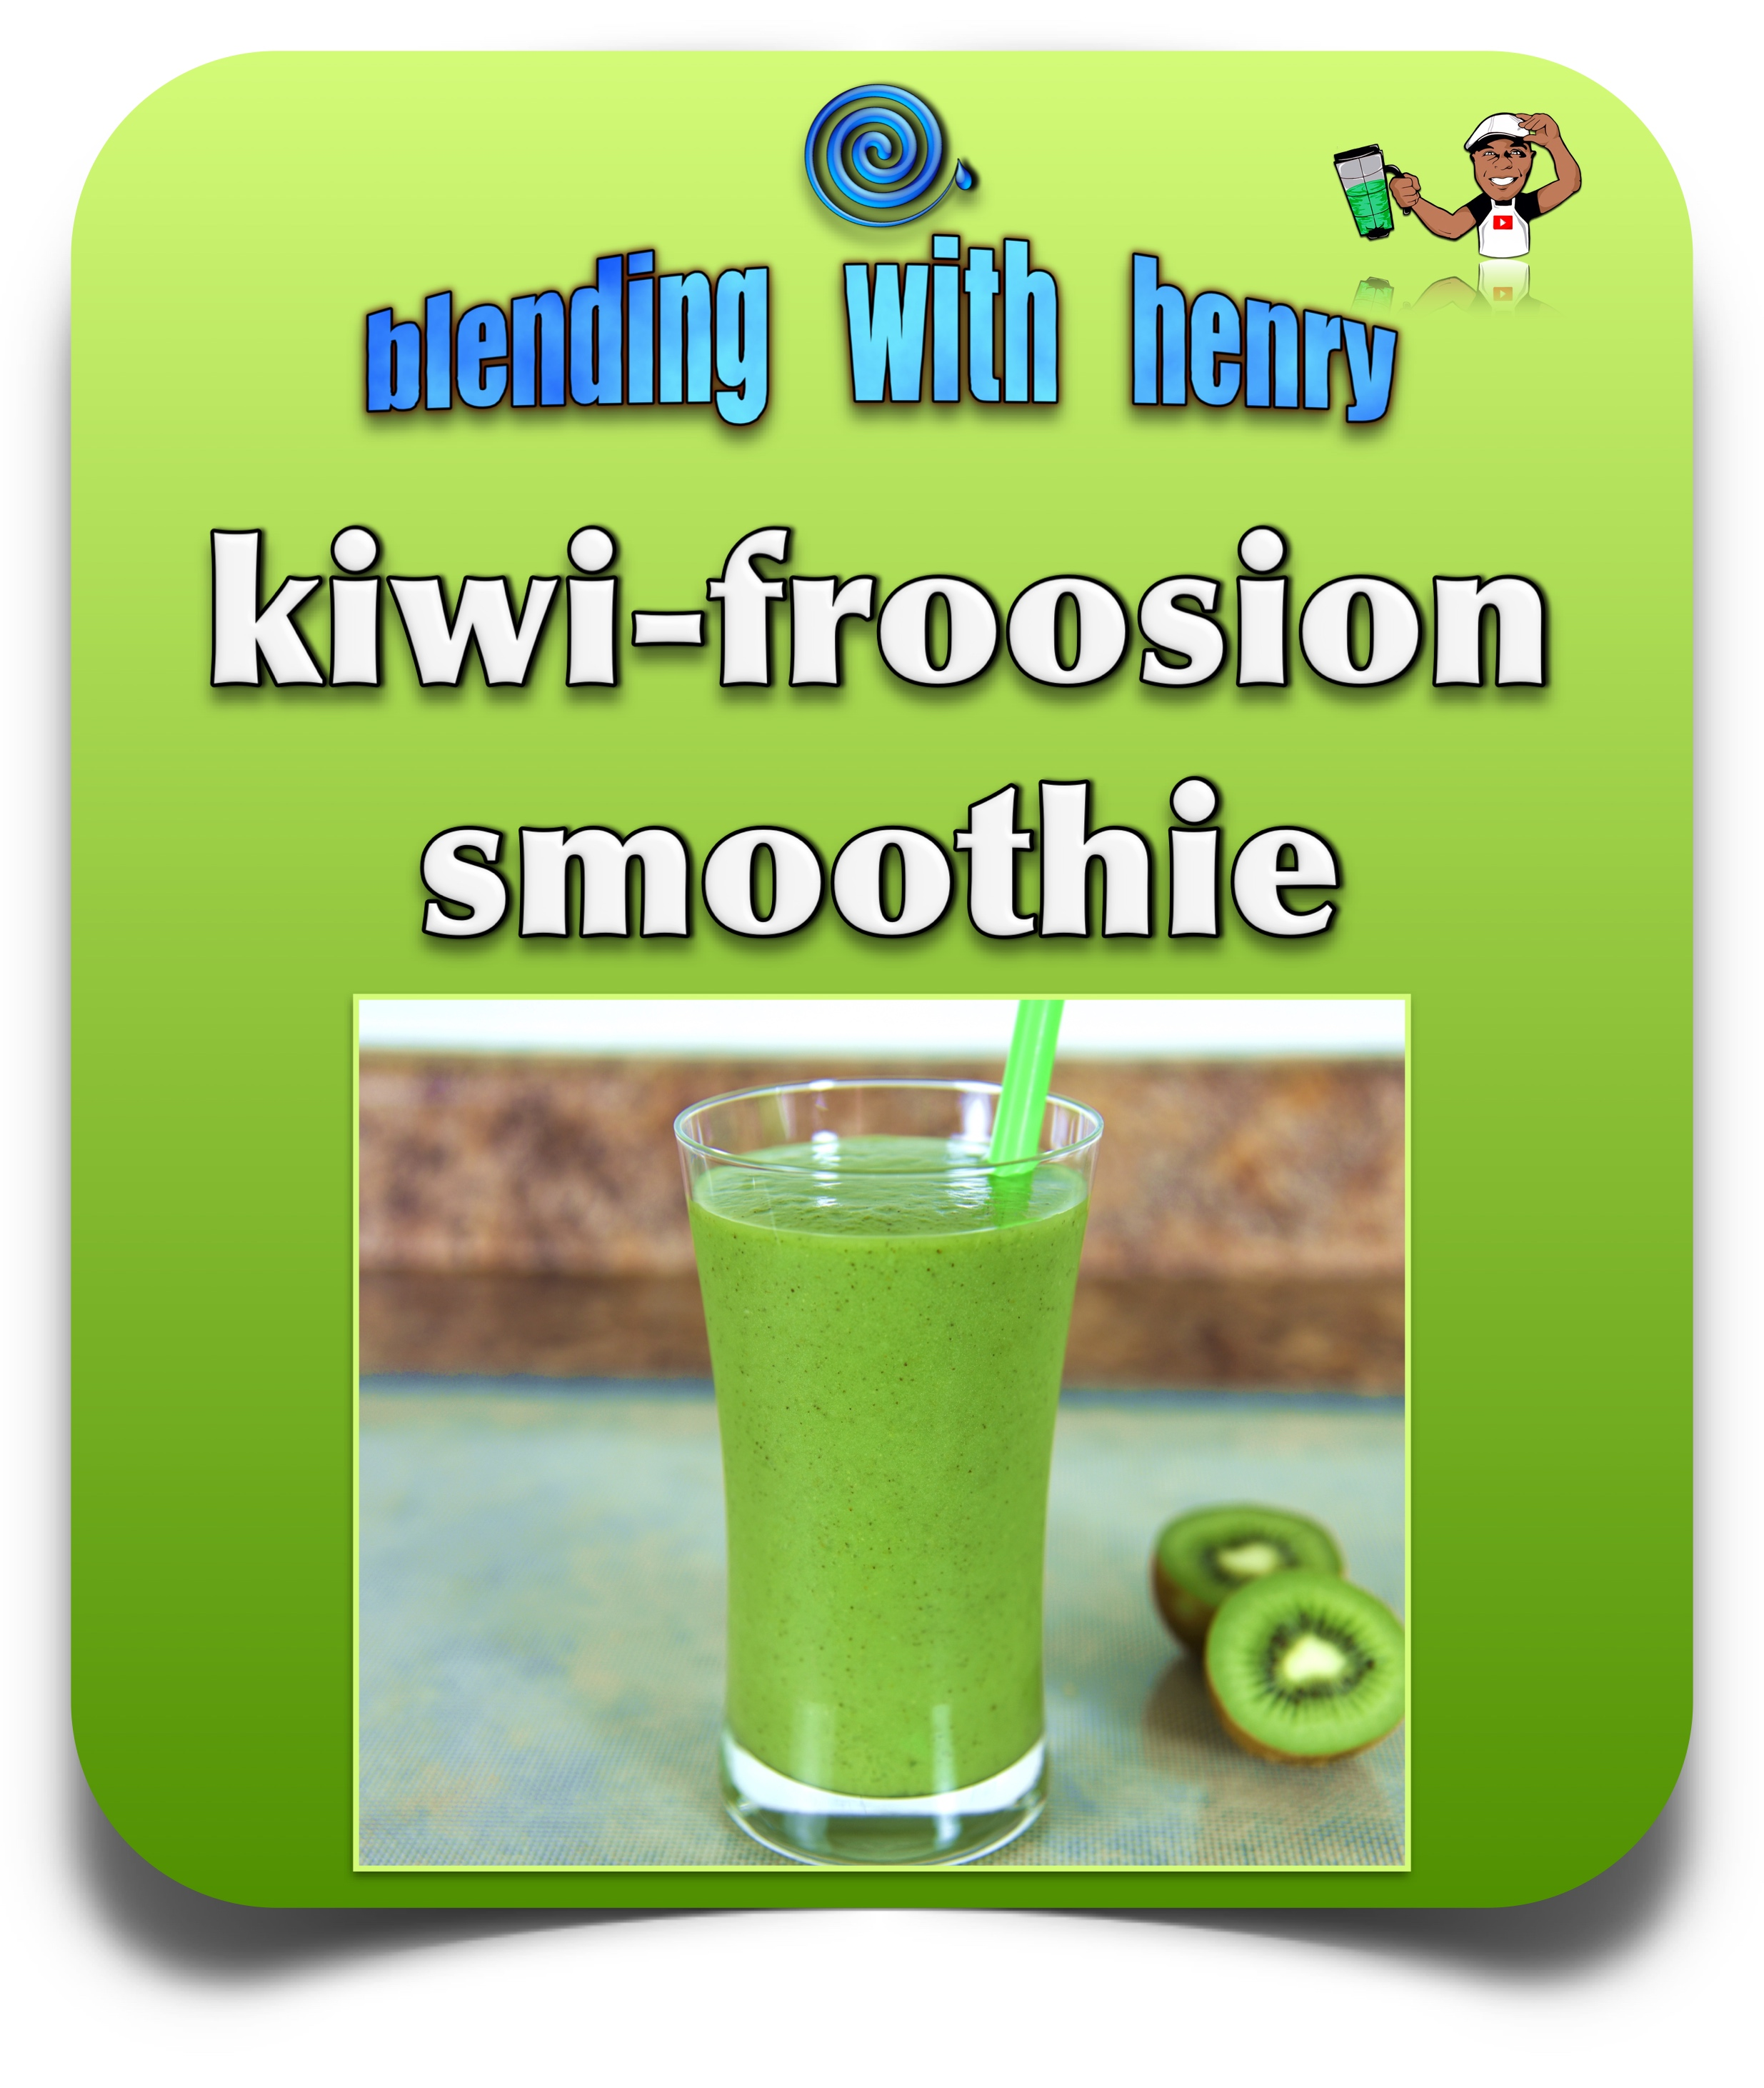 kiwi froosion smoothie.jpg